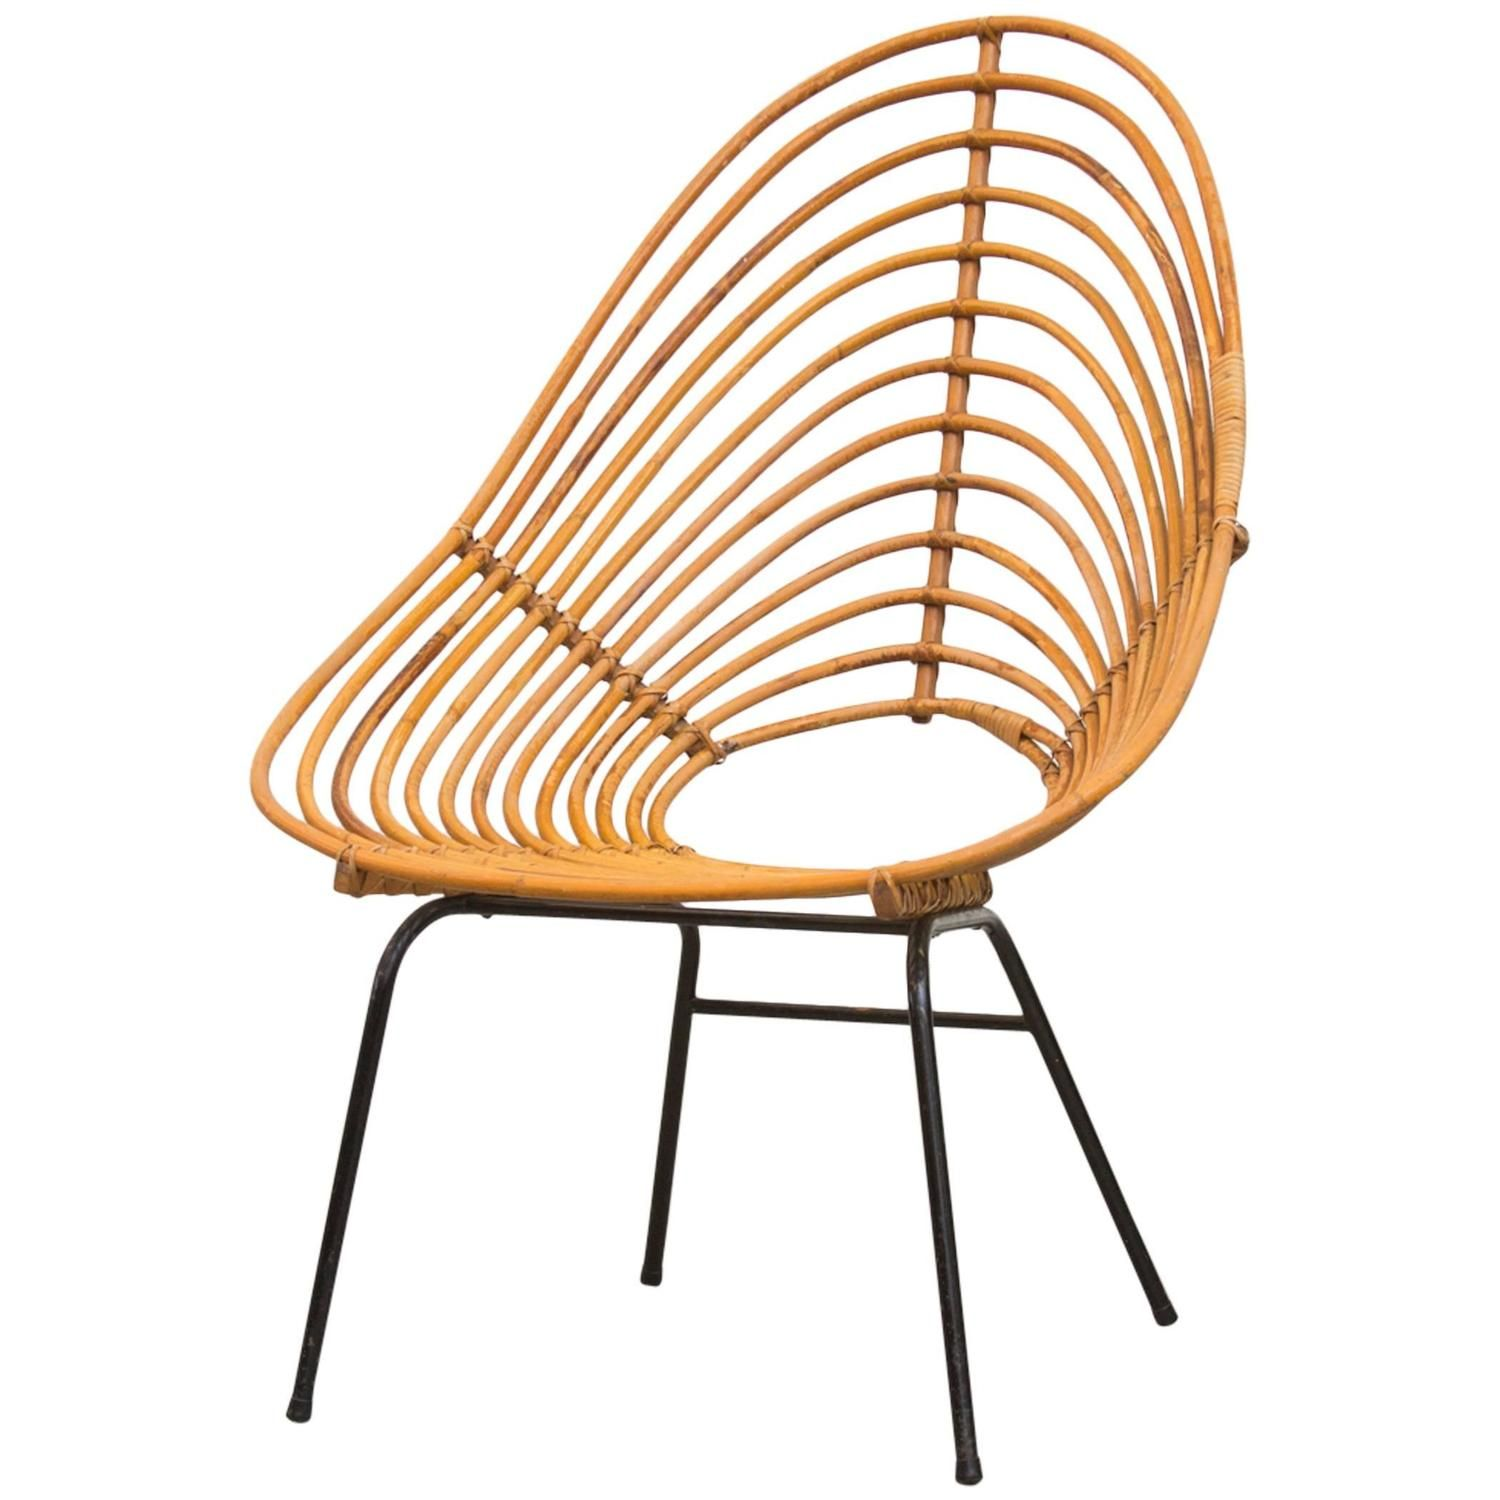 ion Skin Patterned Tall Bamboo Lounge Chair